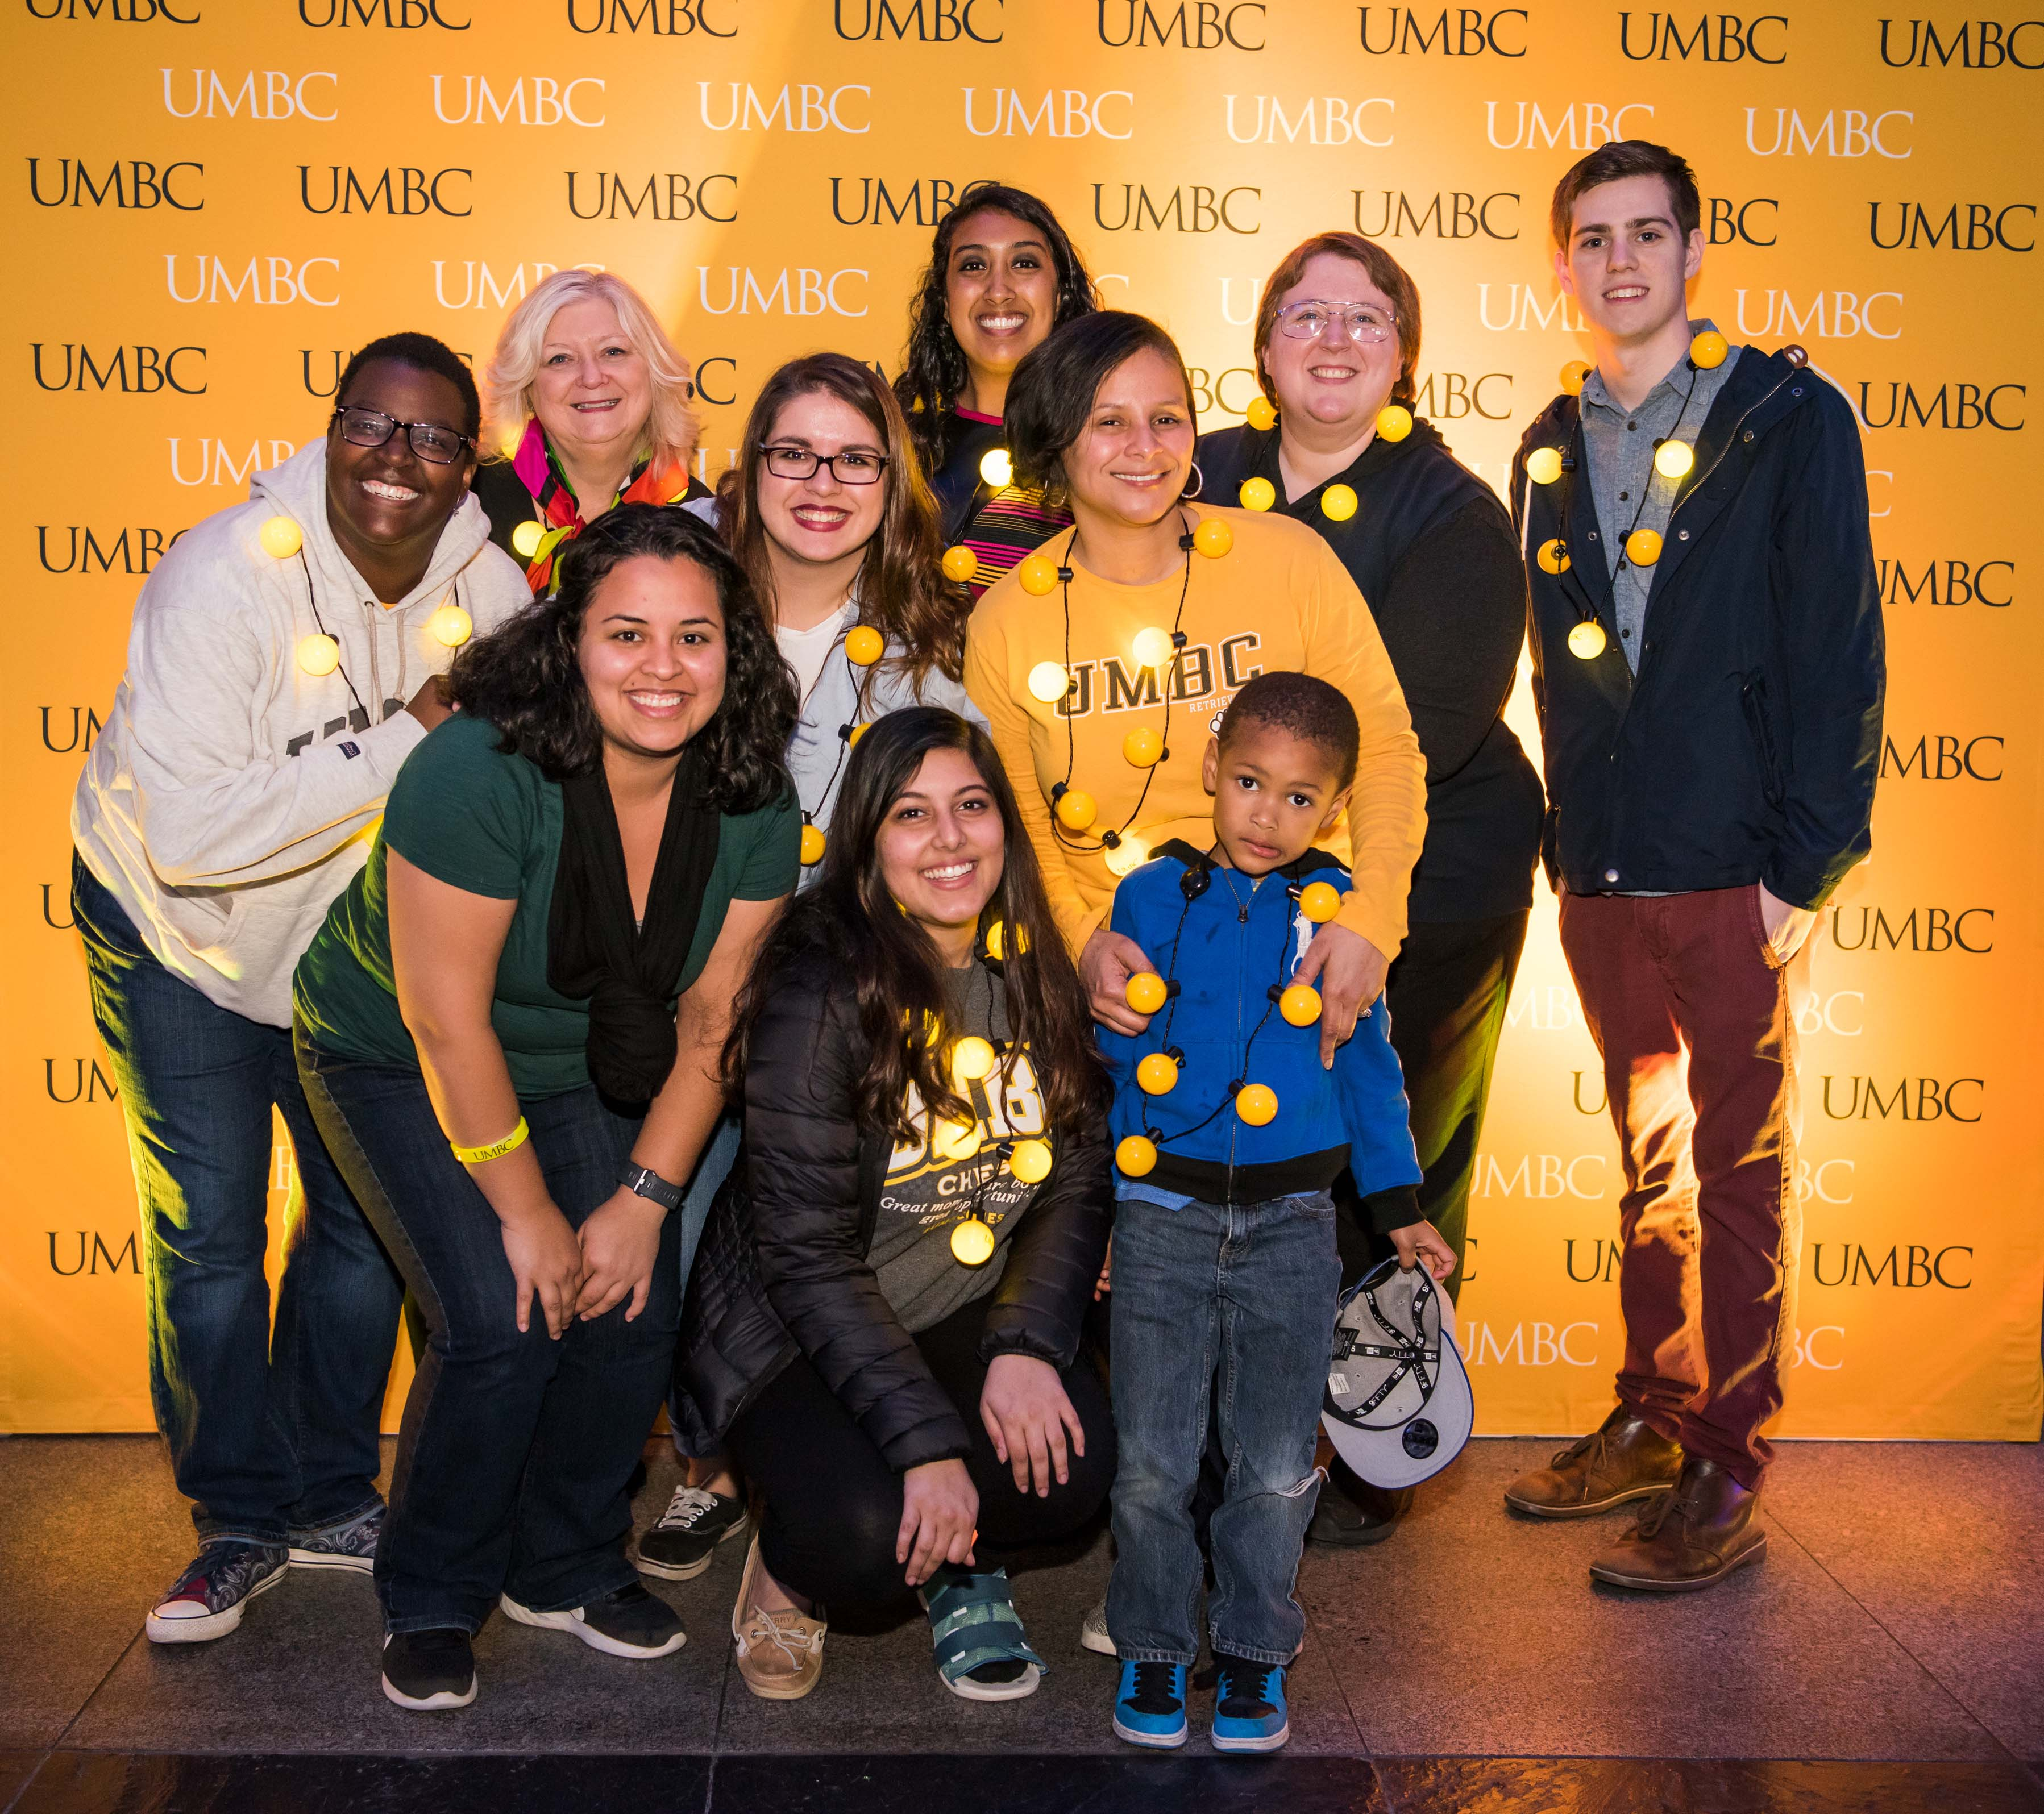 Large group pose in front of UMBC wall at alumni reception